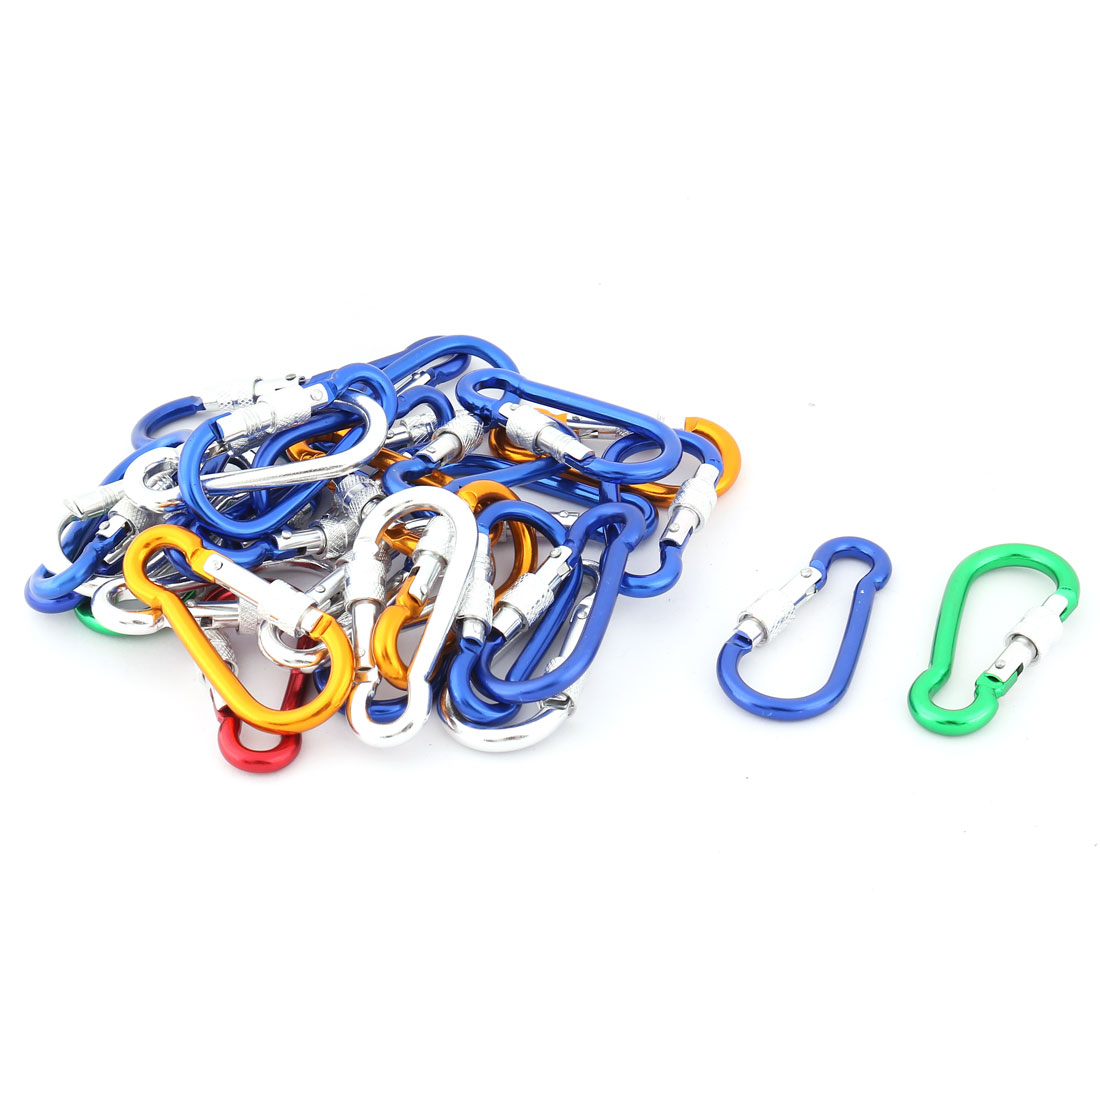 30 Pcs Coloful Aluminum Alloy Spring Loaded Gate Locking Carabiner Hook